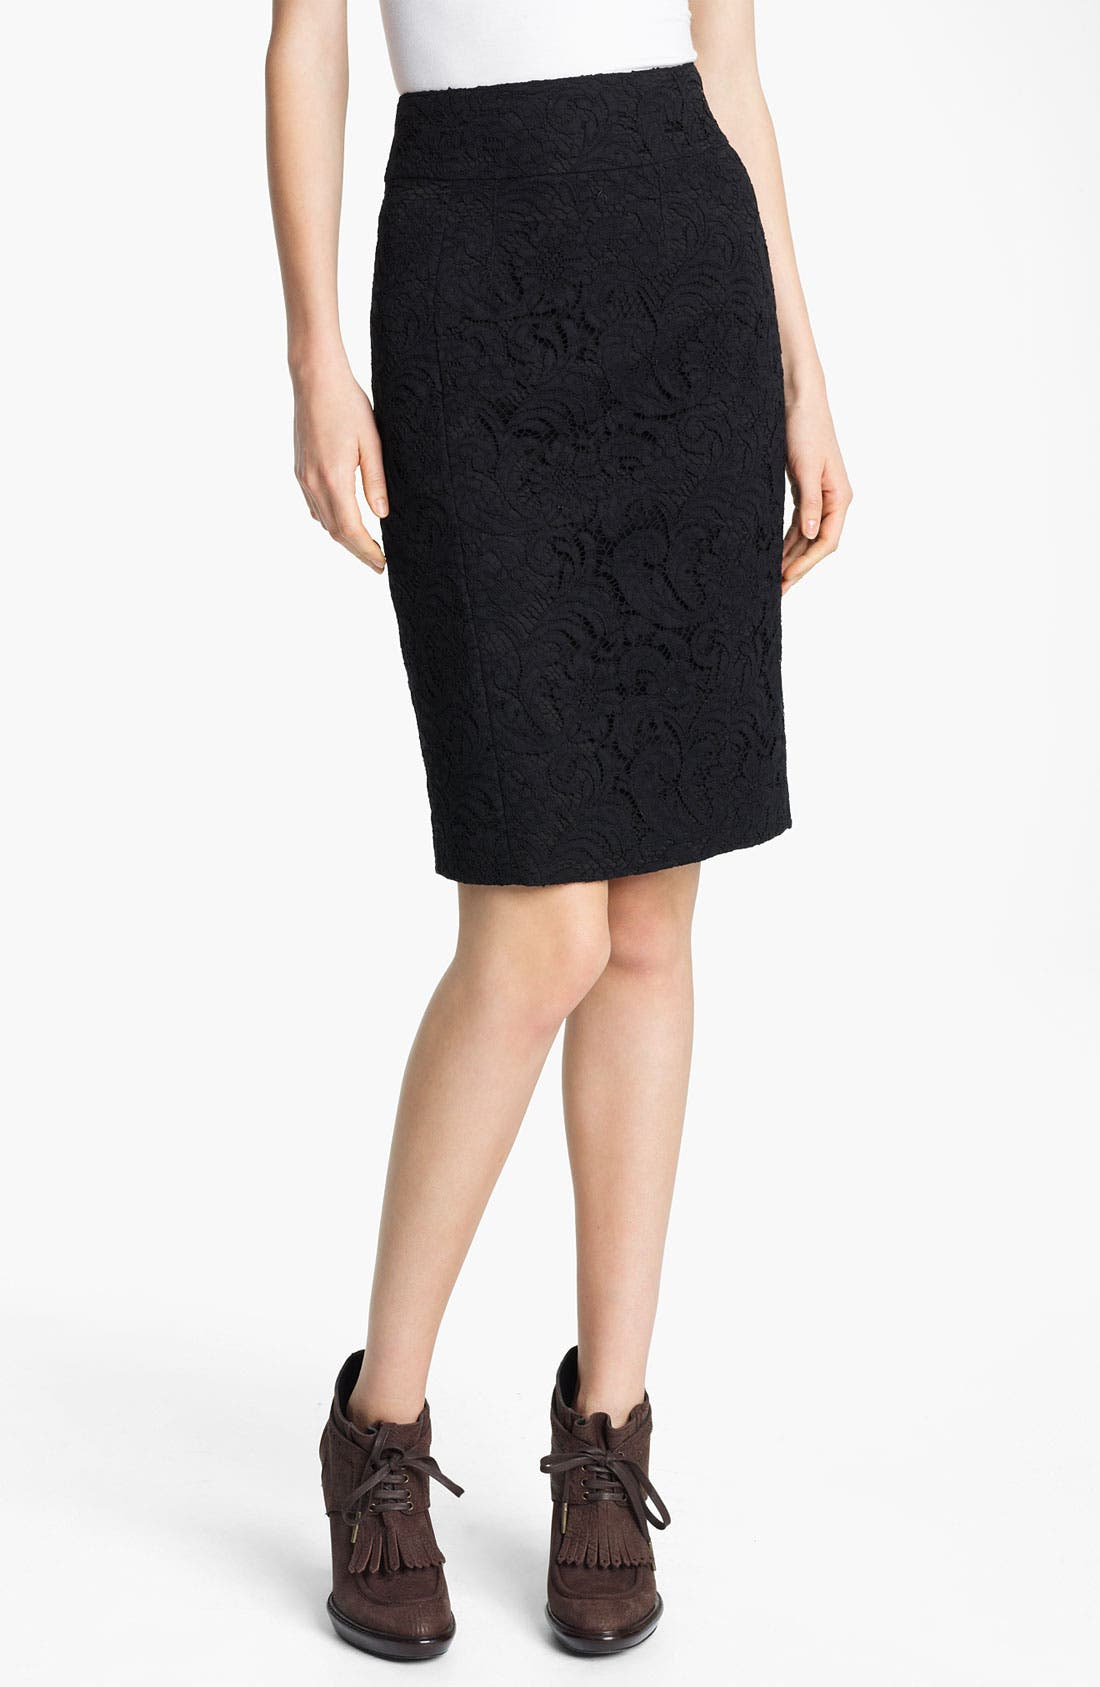 Alternate Image 1 Selected - Burberry London Lace Pencil Skirt